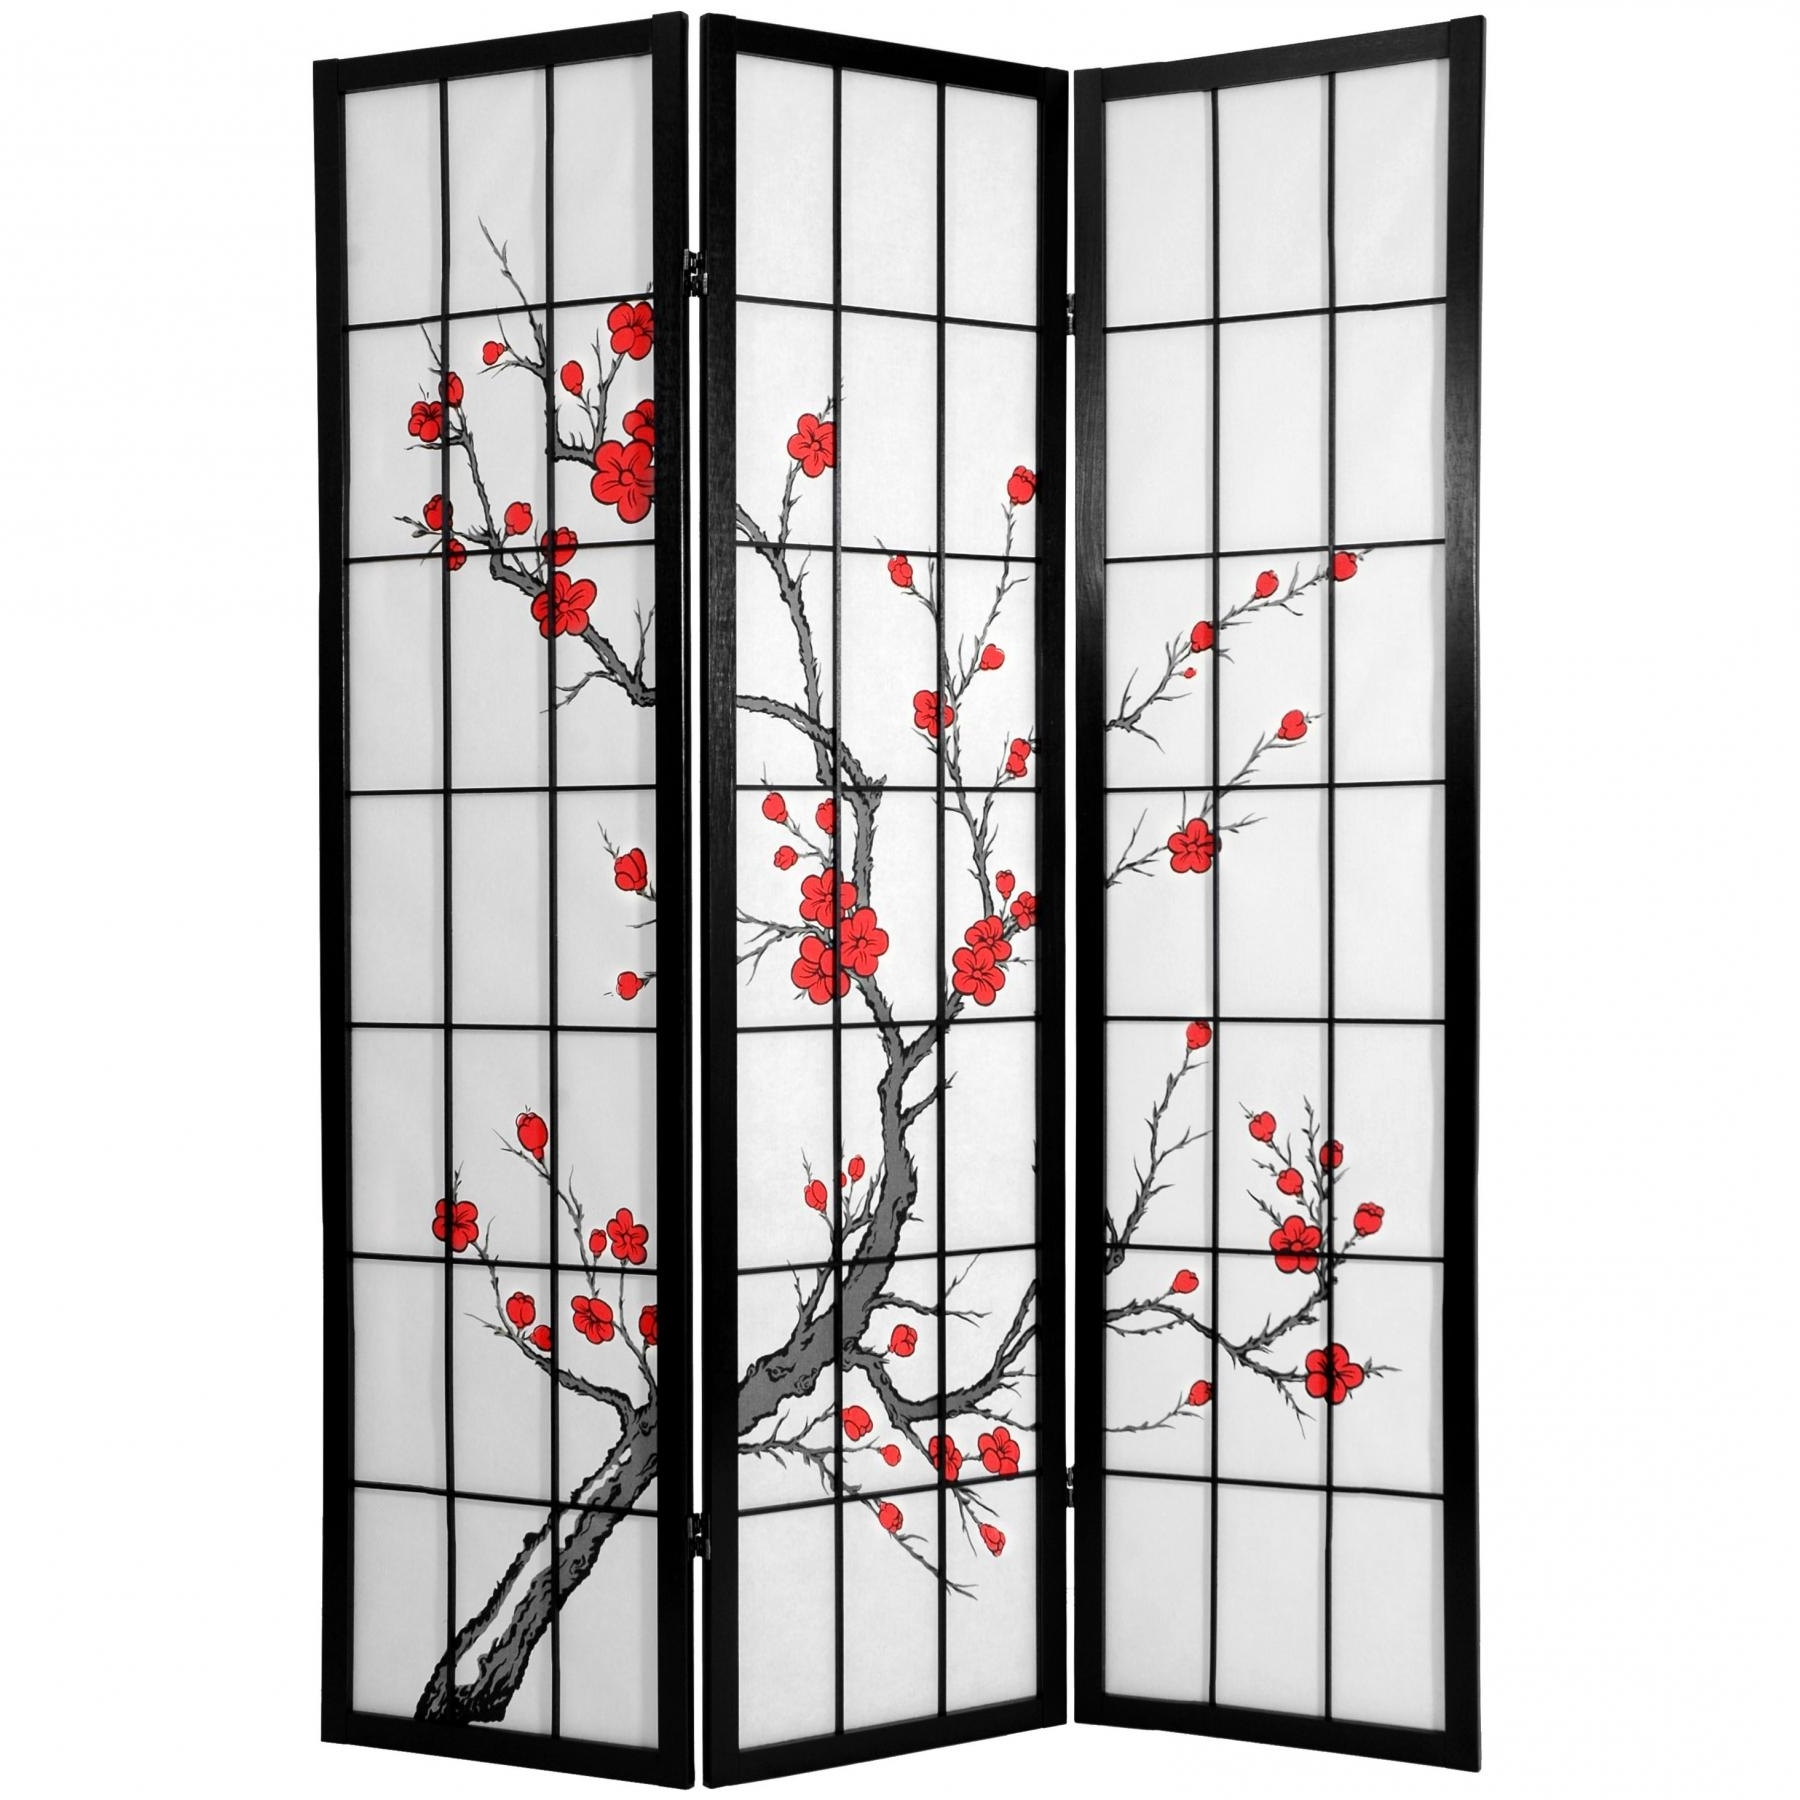 Room Dividers And Privacy Screens – Over 1,500 Unique Styles Available Throughout Room Dividers & Decorative Screens Ideas (View 6 of 12)